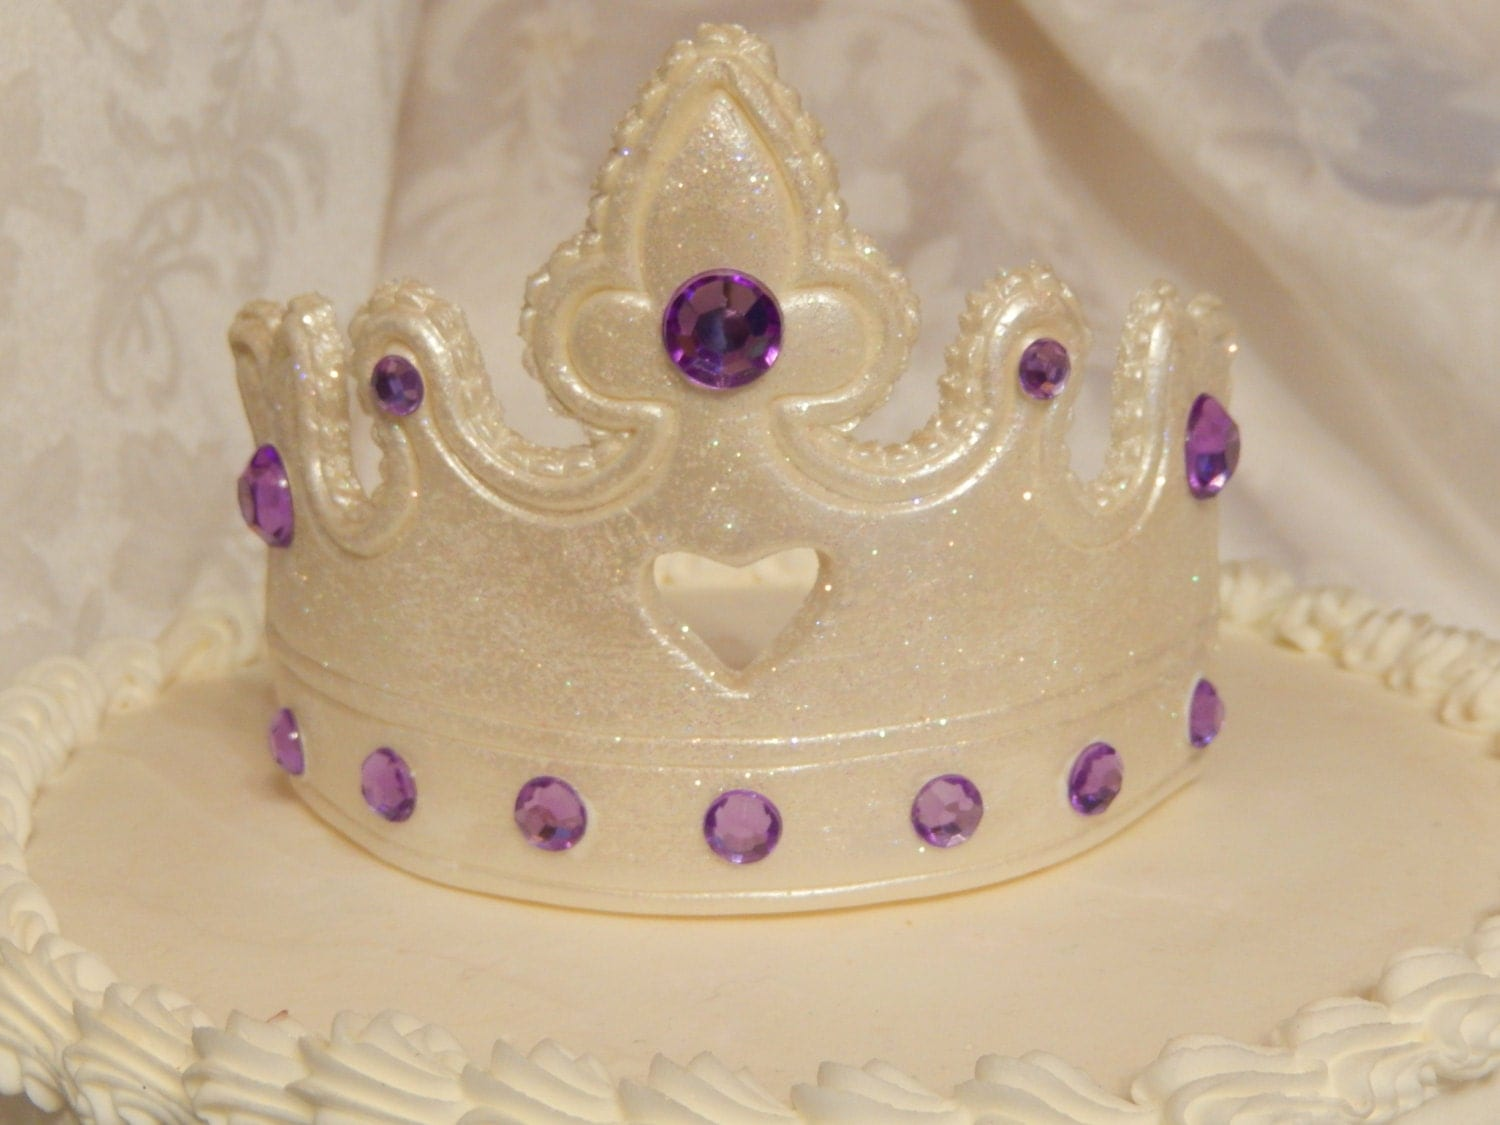 Cake Decoration Crown : Gumpaste Princess Tiara Crown Cake Topper Decoration